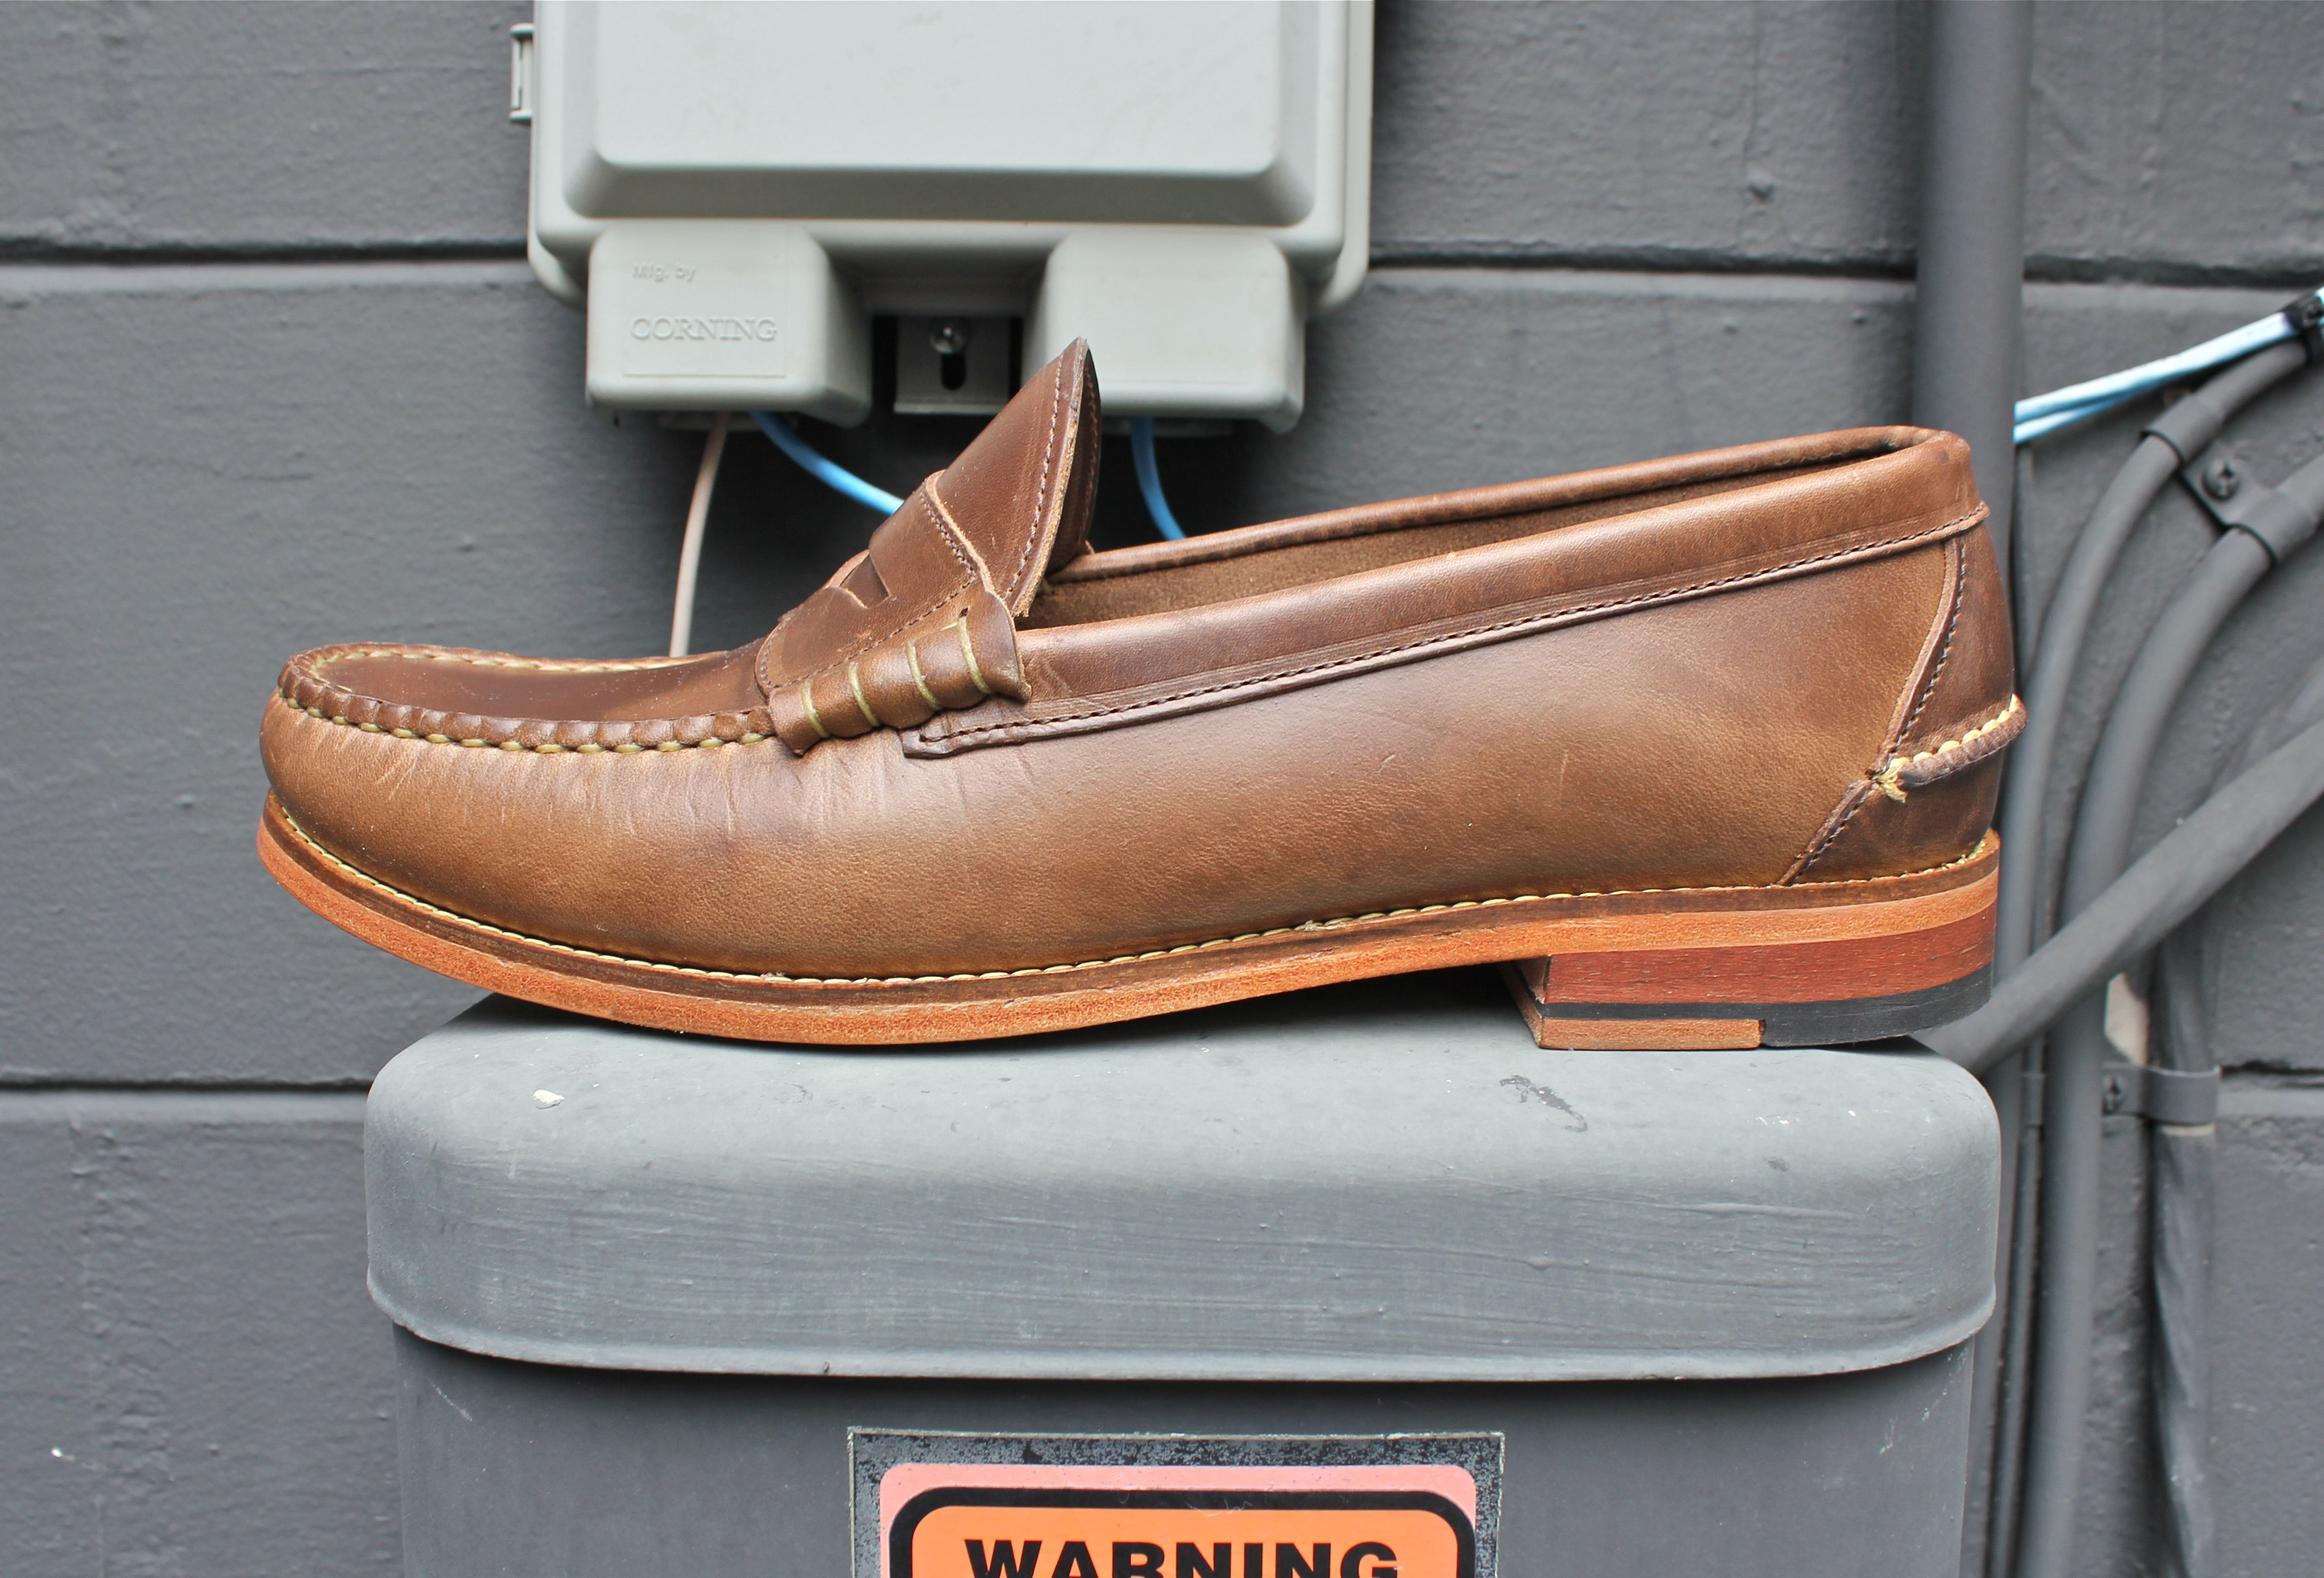 b75c70236c5 Beefroll penny loafers in natural chromexcel by Oak Street Bootmakers. One  of our faves!